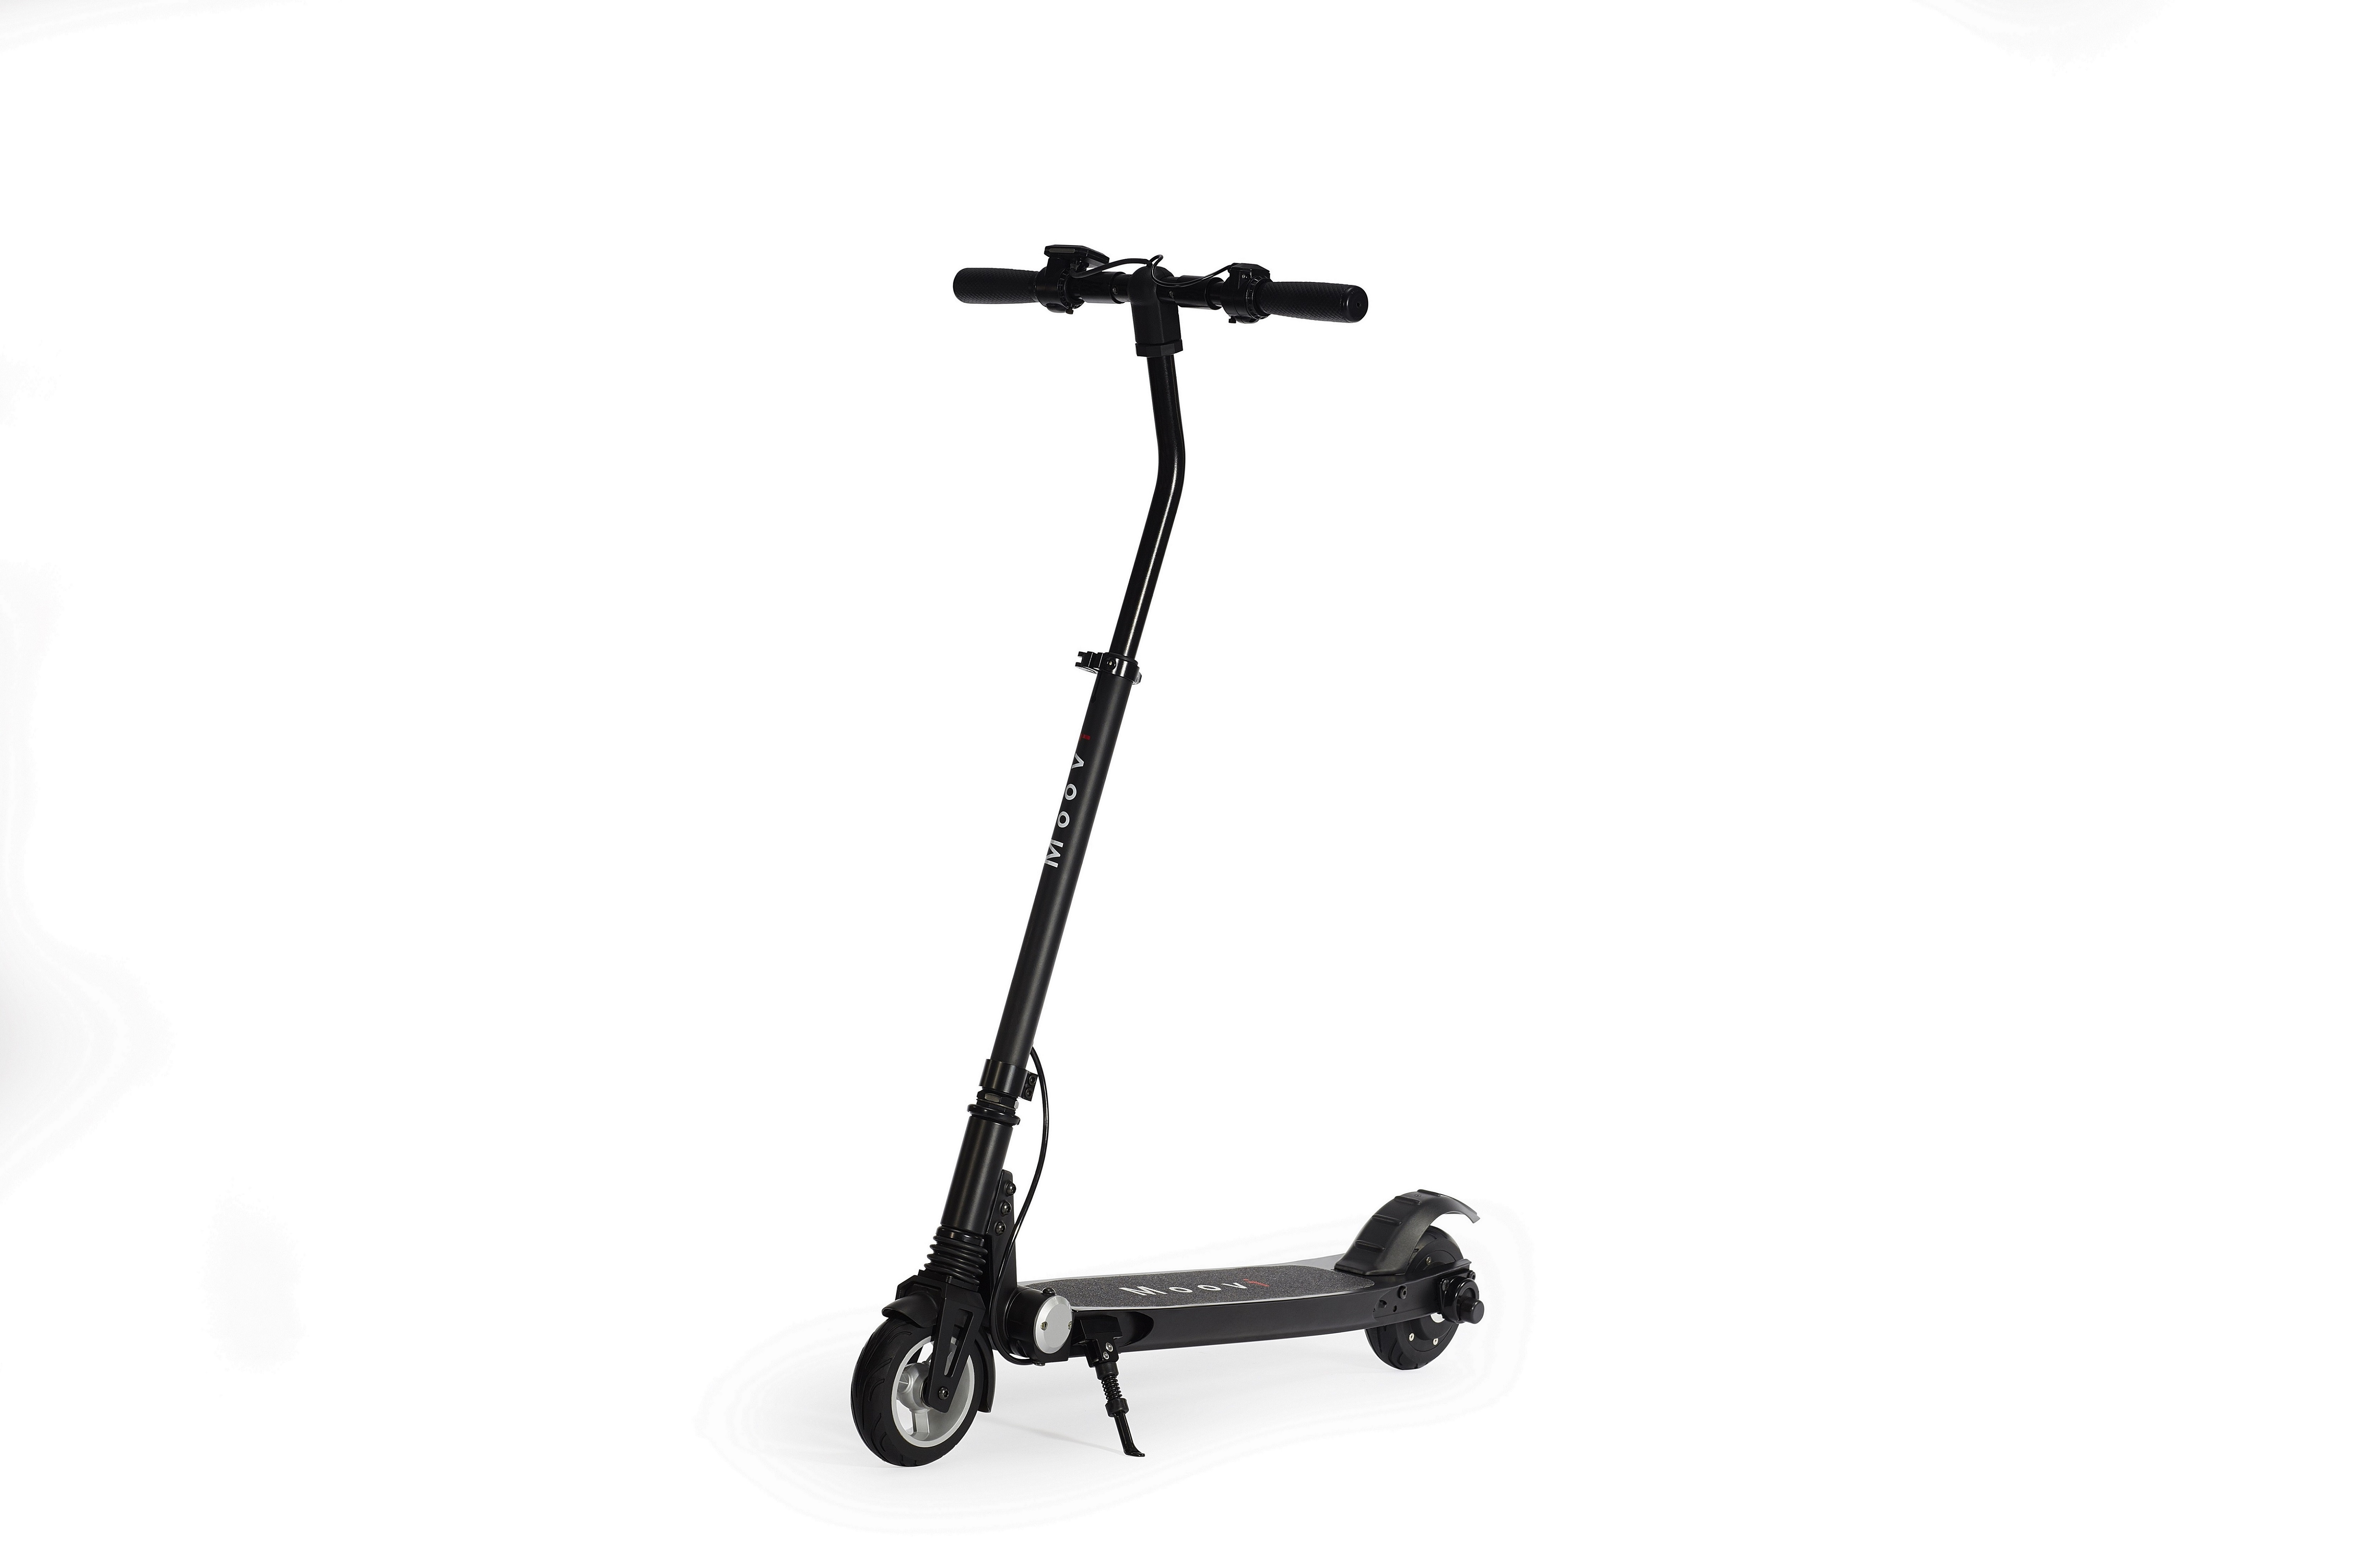 Light Foldable Teenage Electric Scooter with High Speed